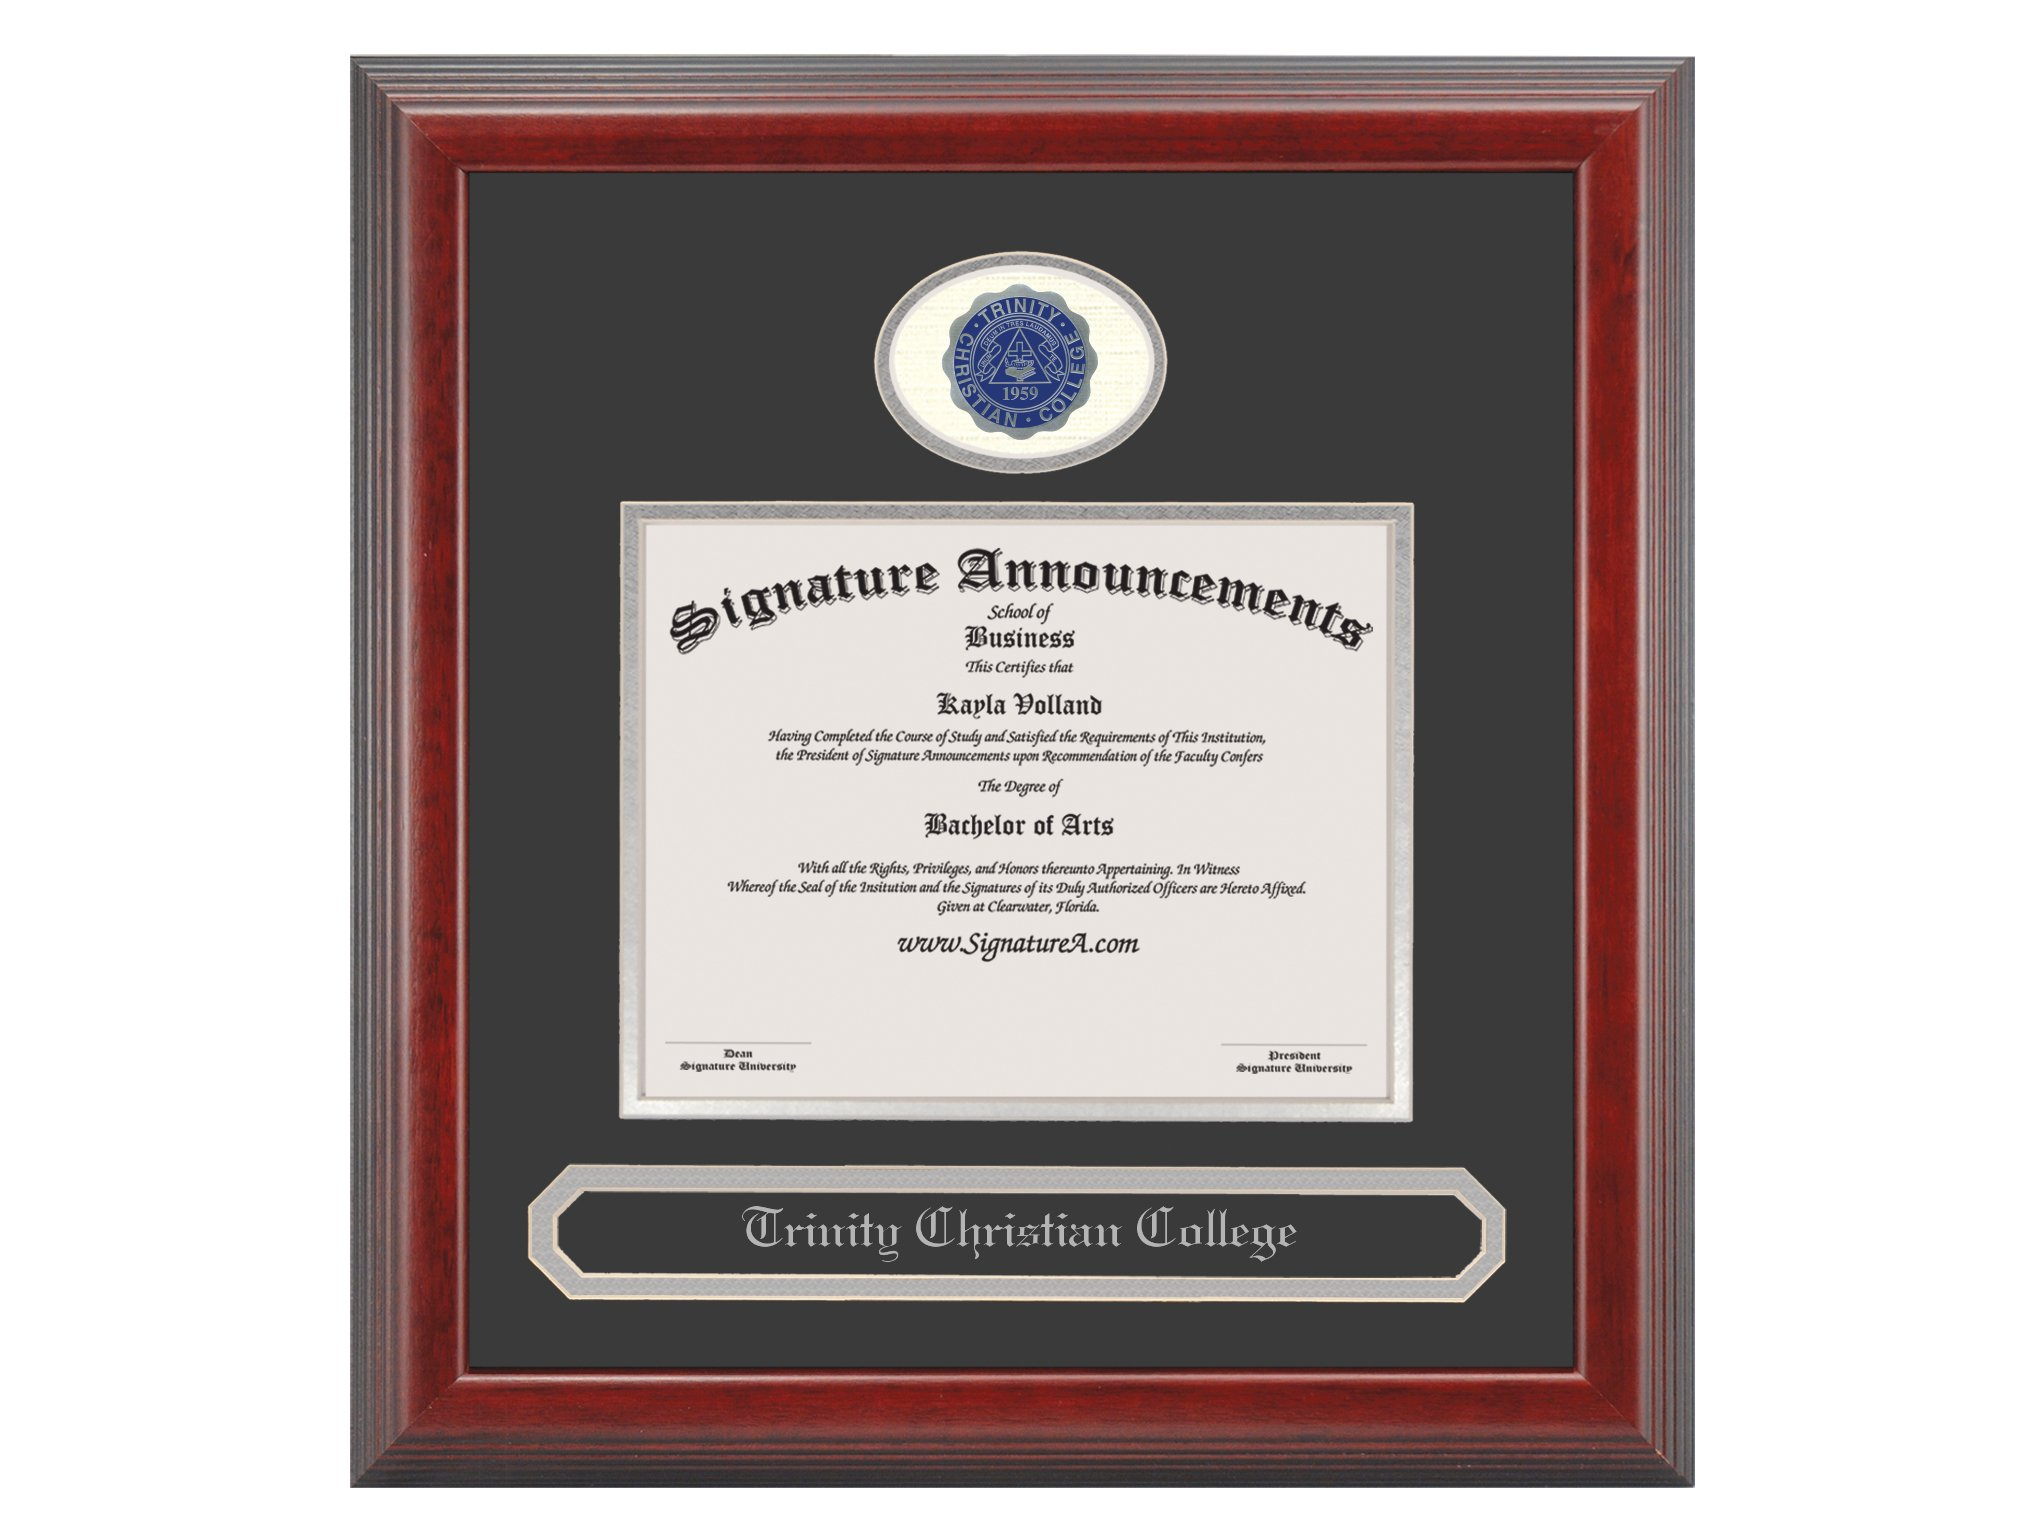 Signature Announcements Trinity Christian College Undergraduate Sculpted Foil Seal & Name Graduation Diploma Frame, 16'' x 16'', Cherry by Signature Announcements